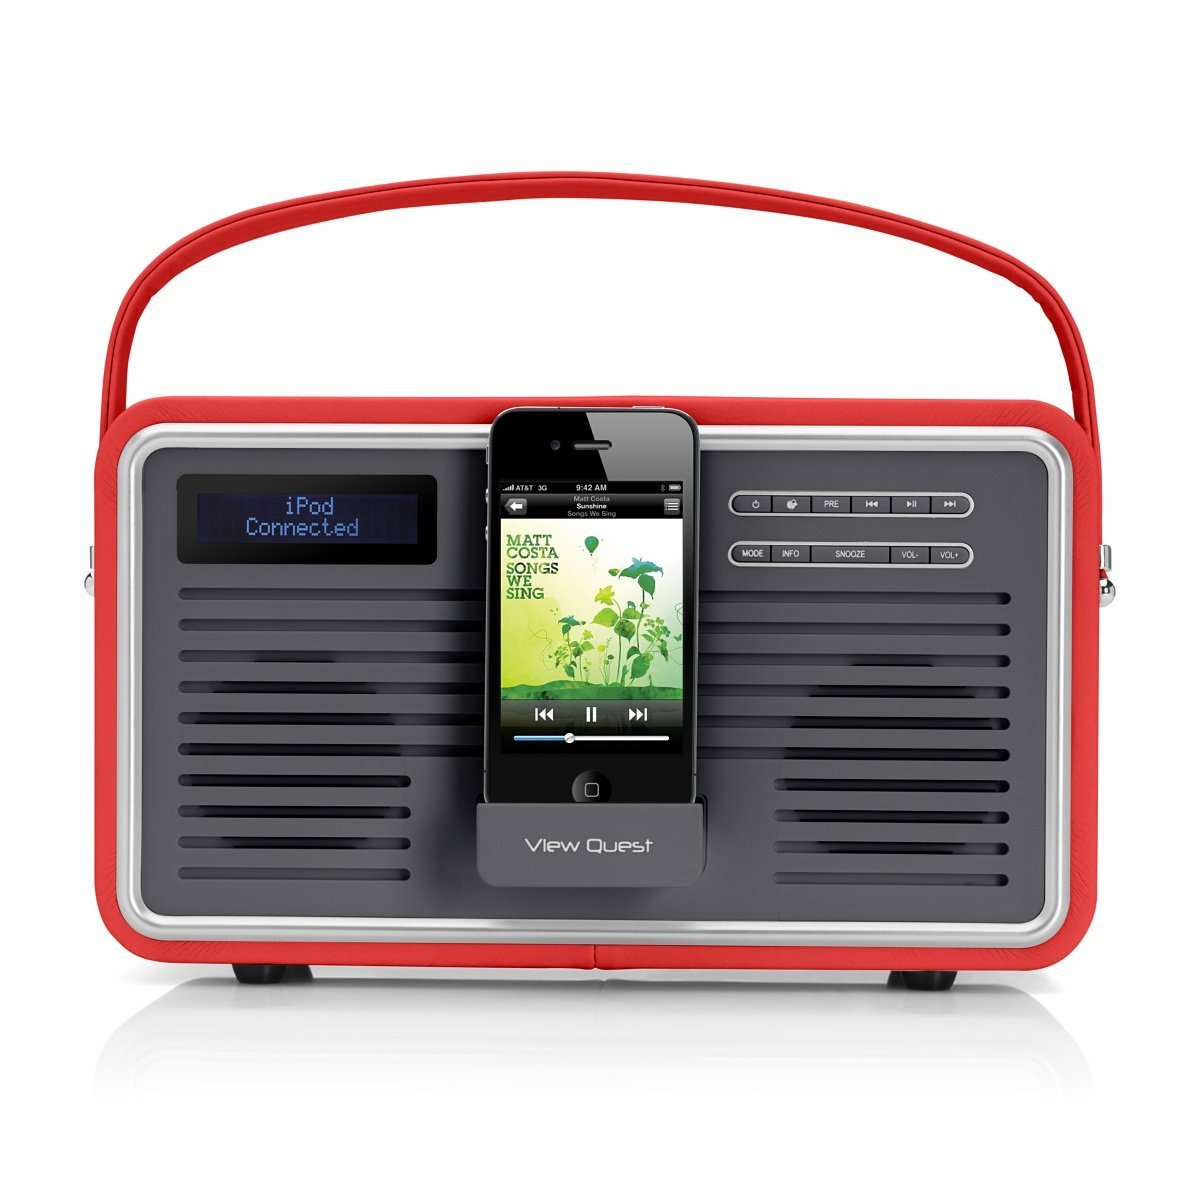 view quest retro tragbarer dab fm radio mit ipod iphone dockingstation rot ebay. Black Bedroom Furniture Sets. Home Design Ideas